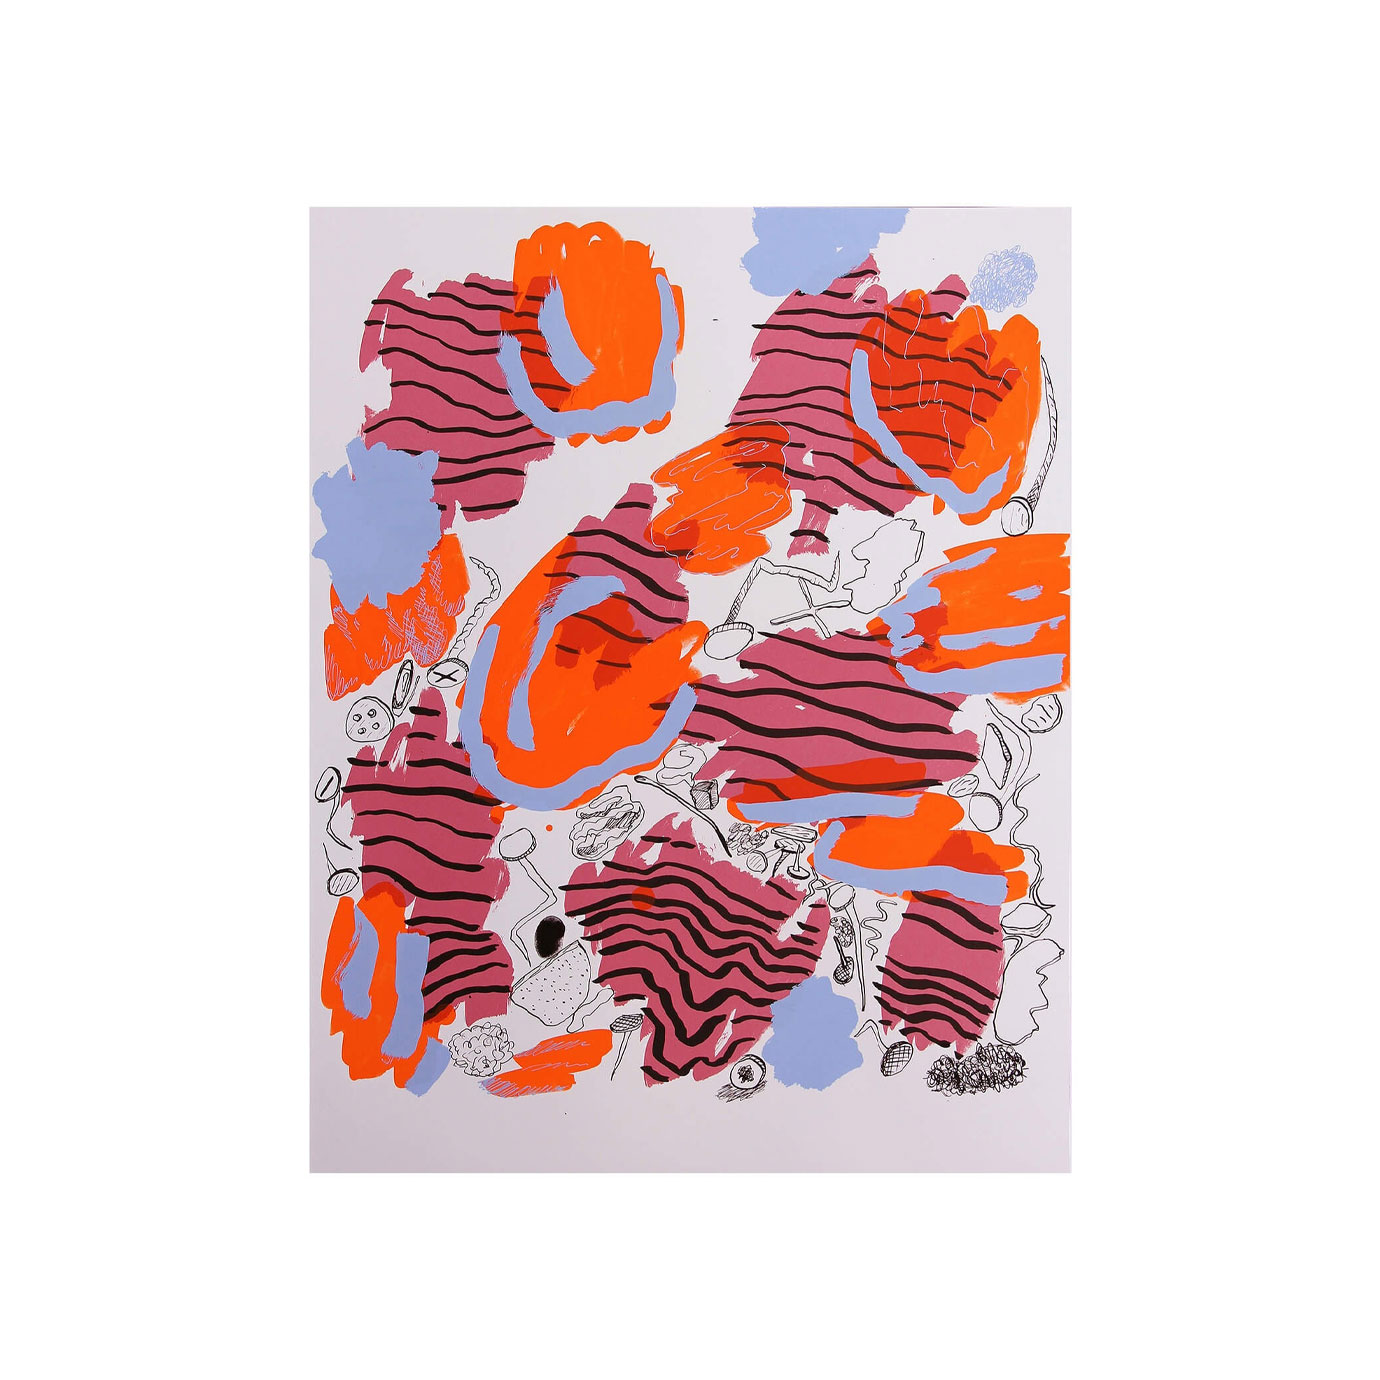 A multi-coloured abstract painting.